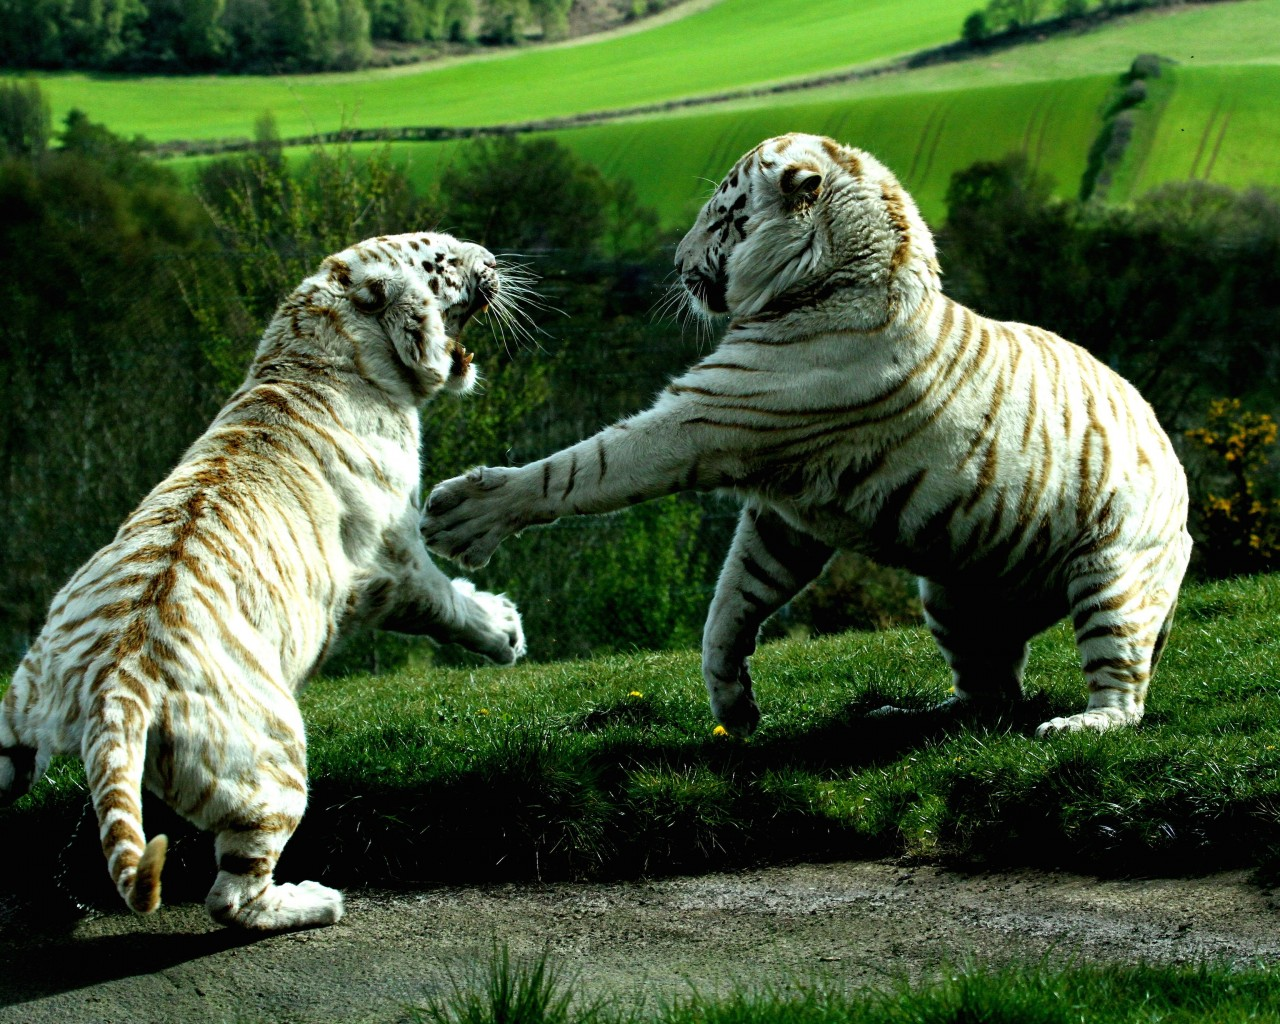 White Tigers Fighting Wallpaper for Desktop 1280x1024